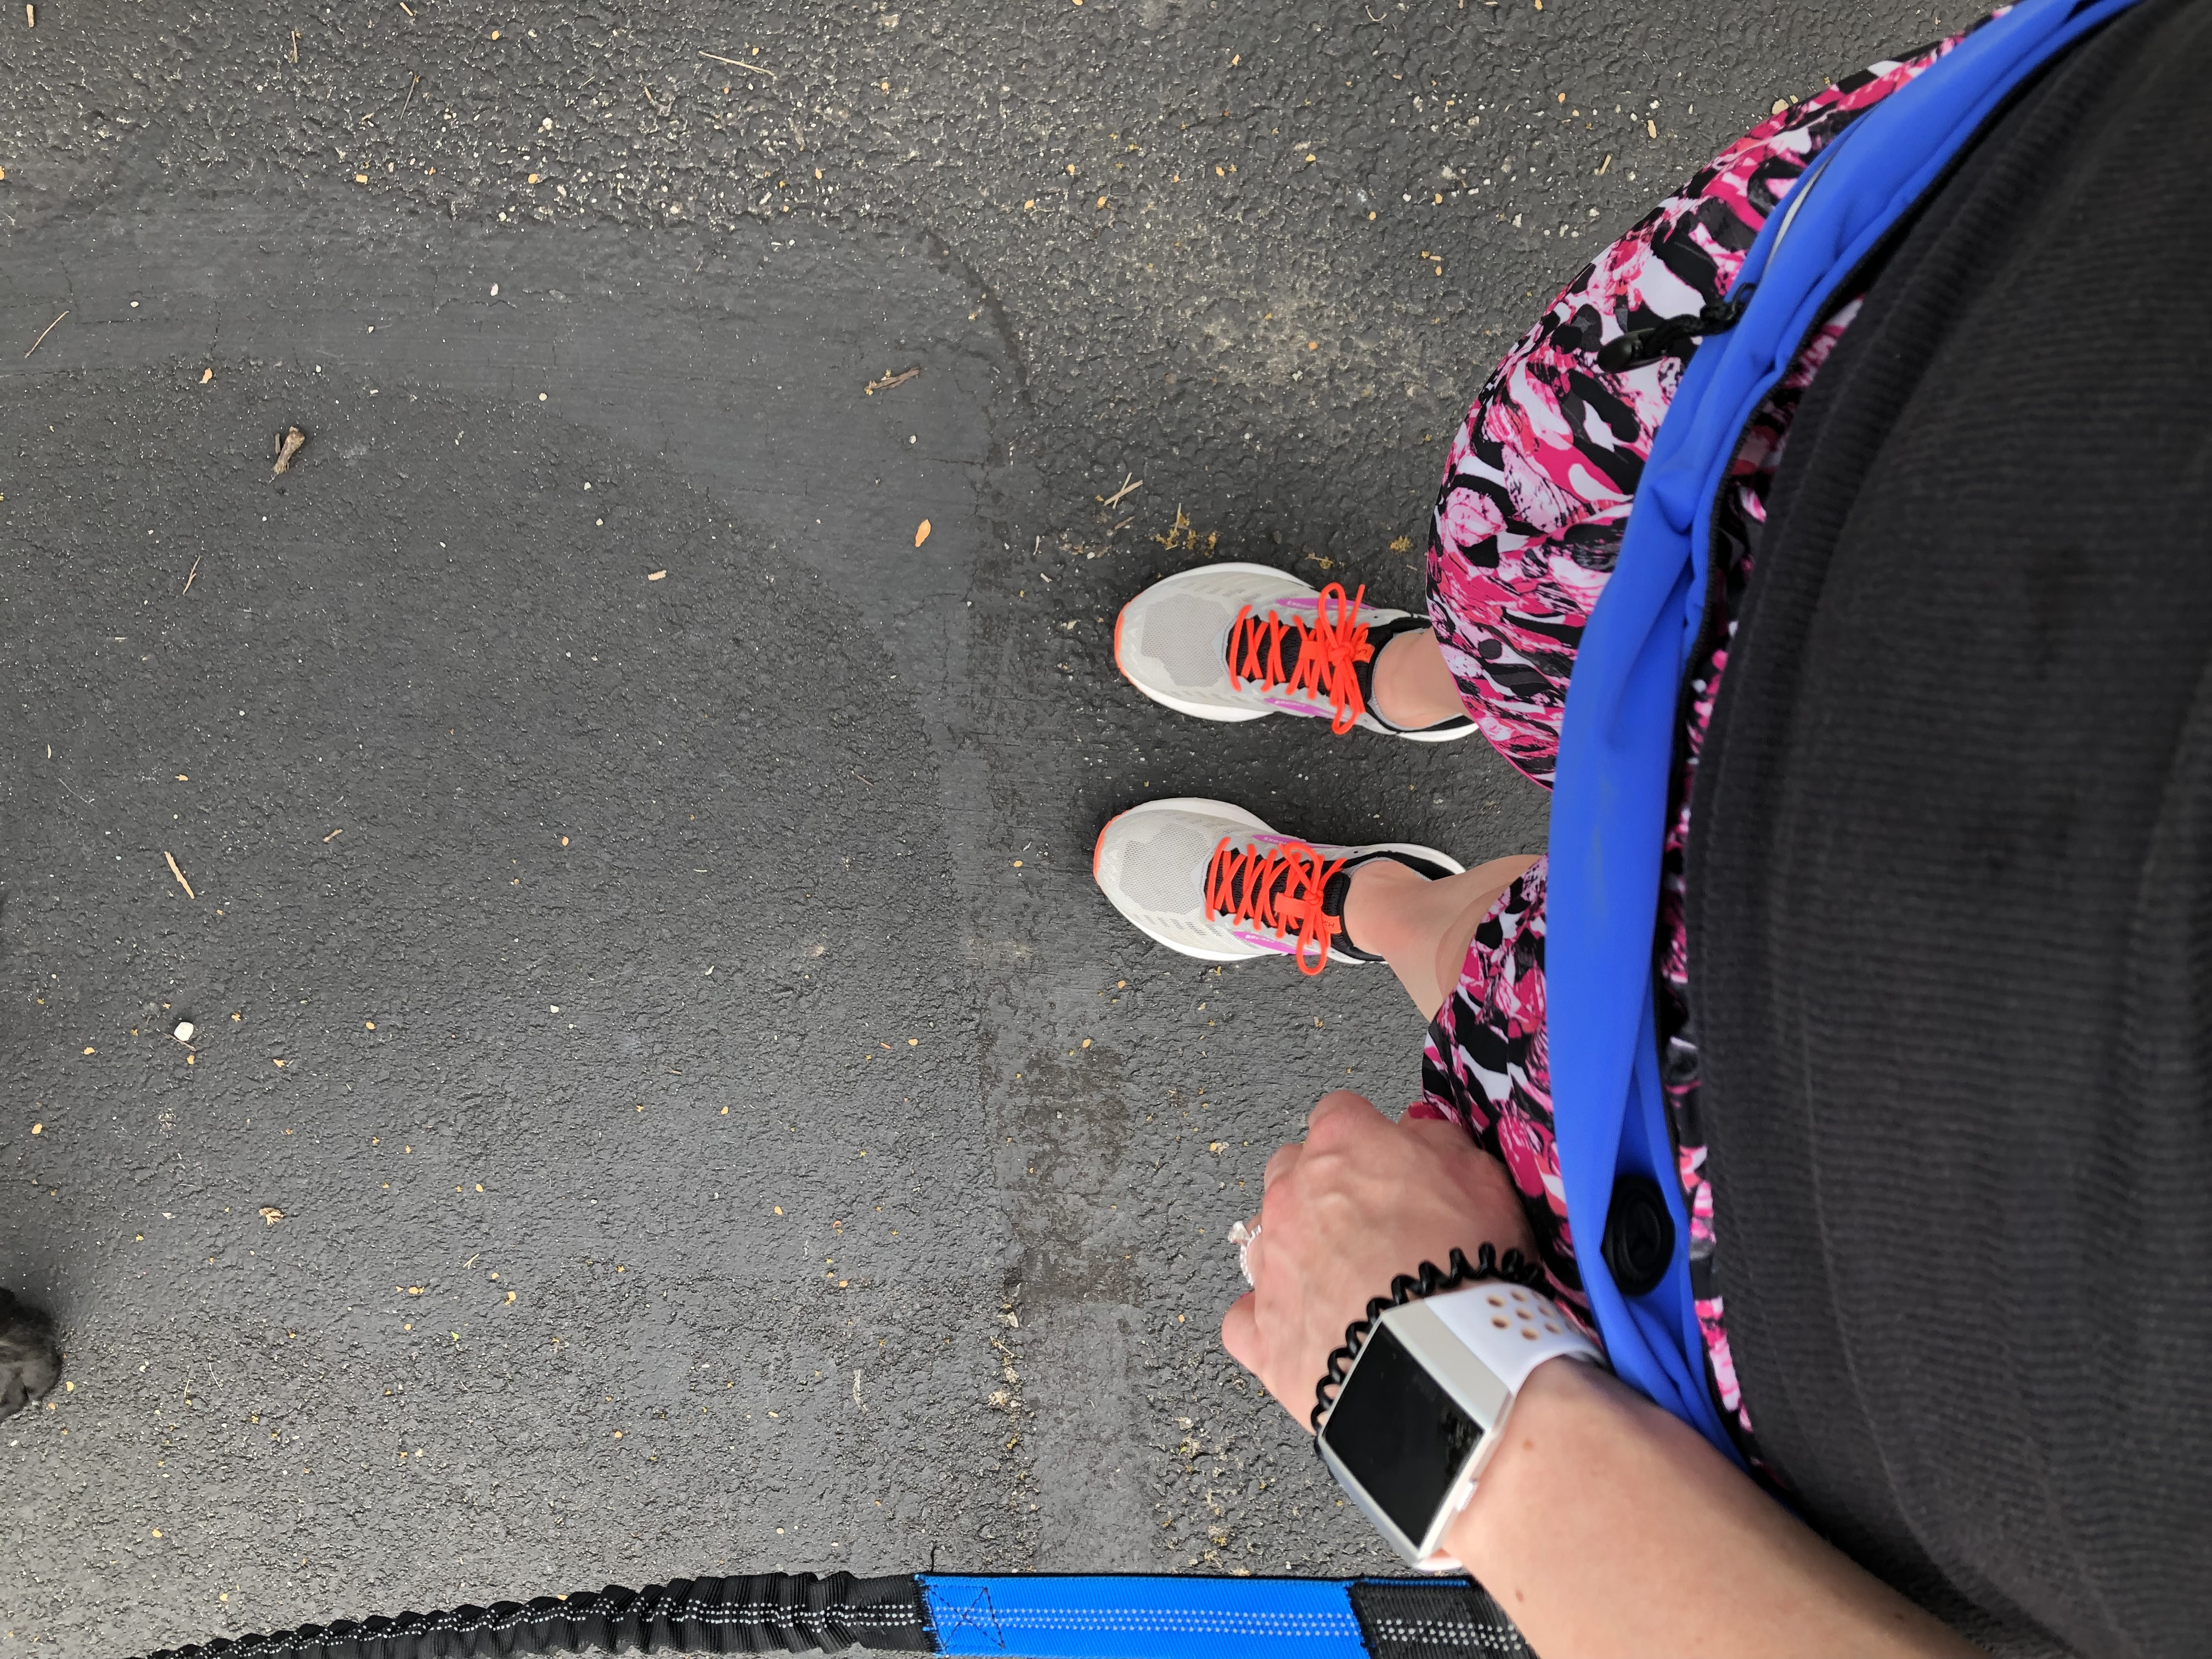 My running shoes, waist band, and Fitbit